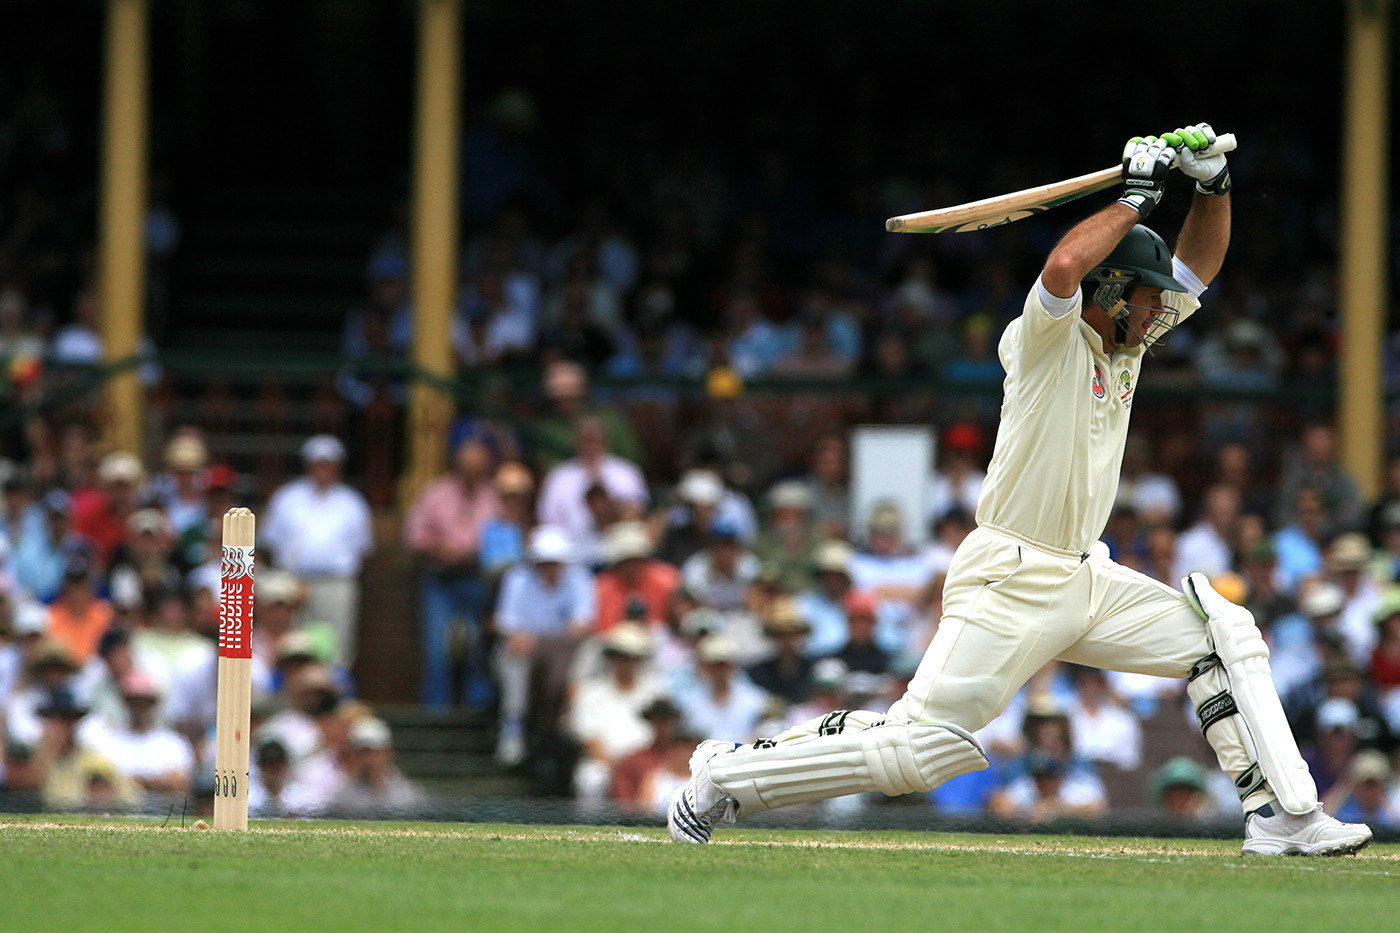 Ricky Ponting lets a delivery go